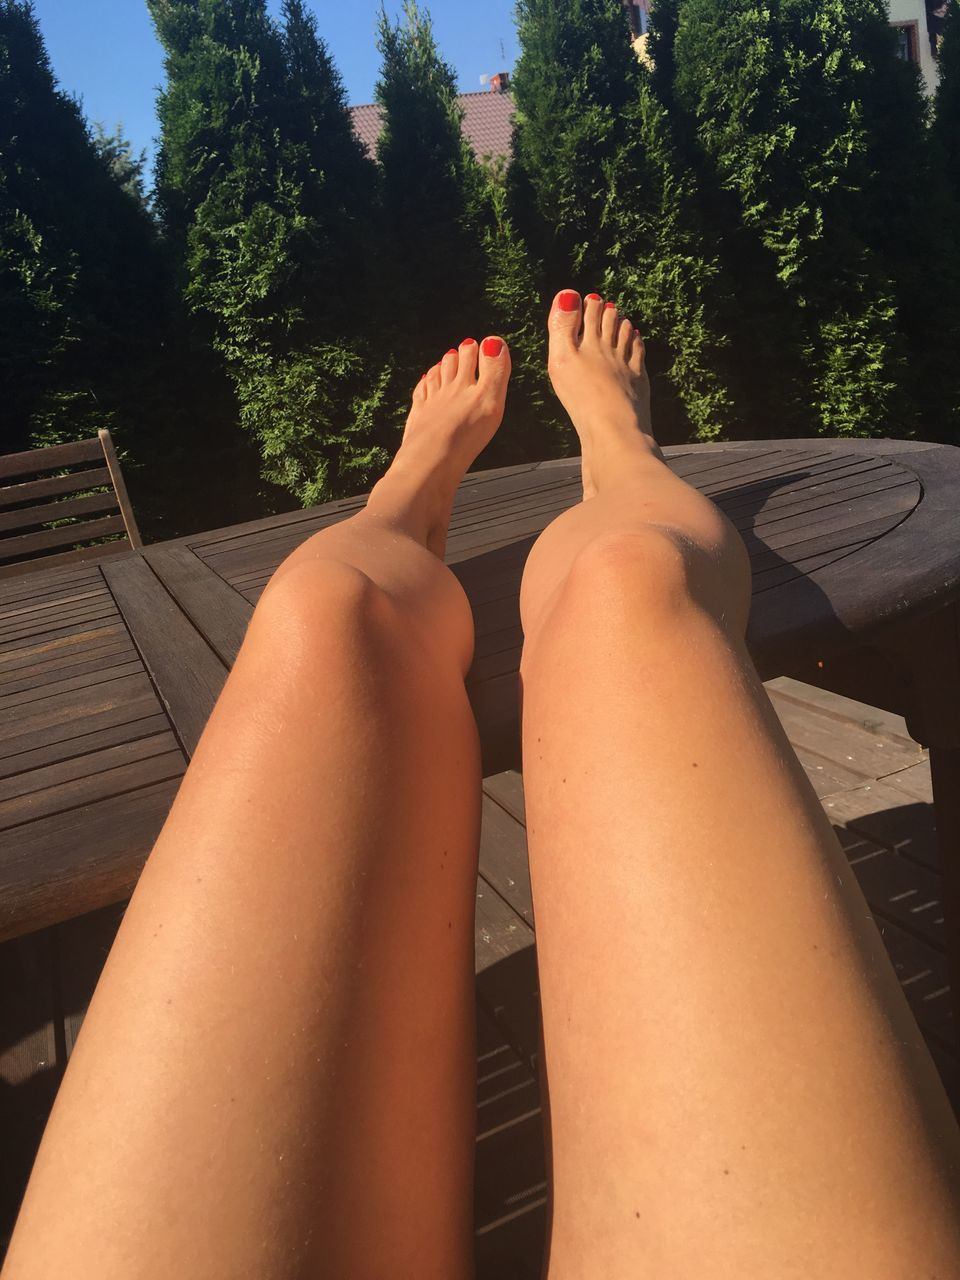 human leg, barefoot, low section, human foot, relaxation, human body part, one person, real people, sitting, outdoors, day, nail polish, nature, people